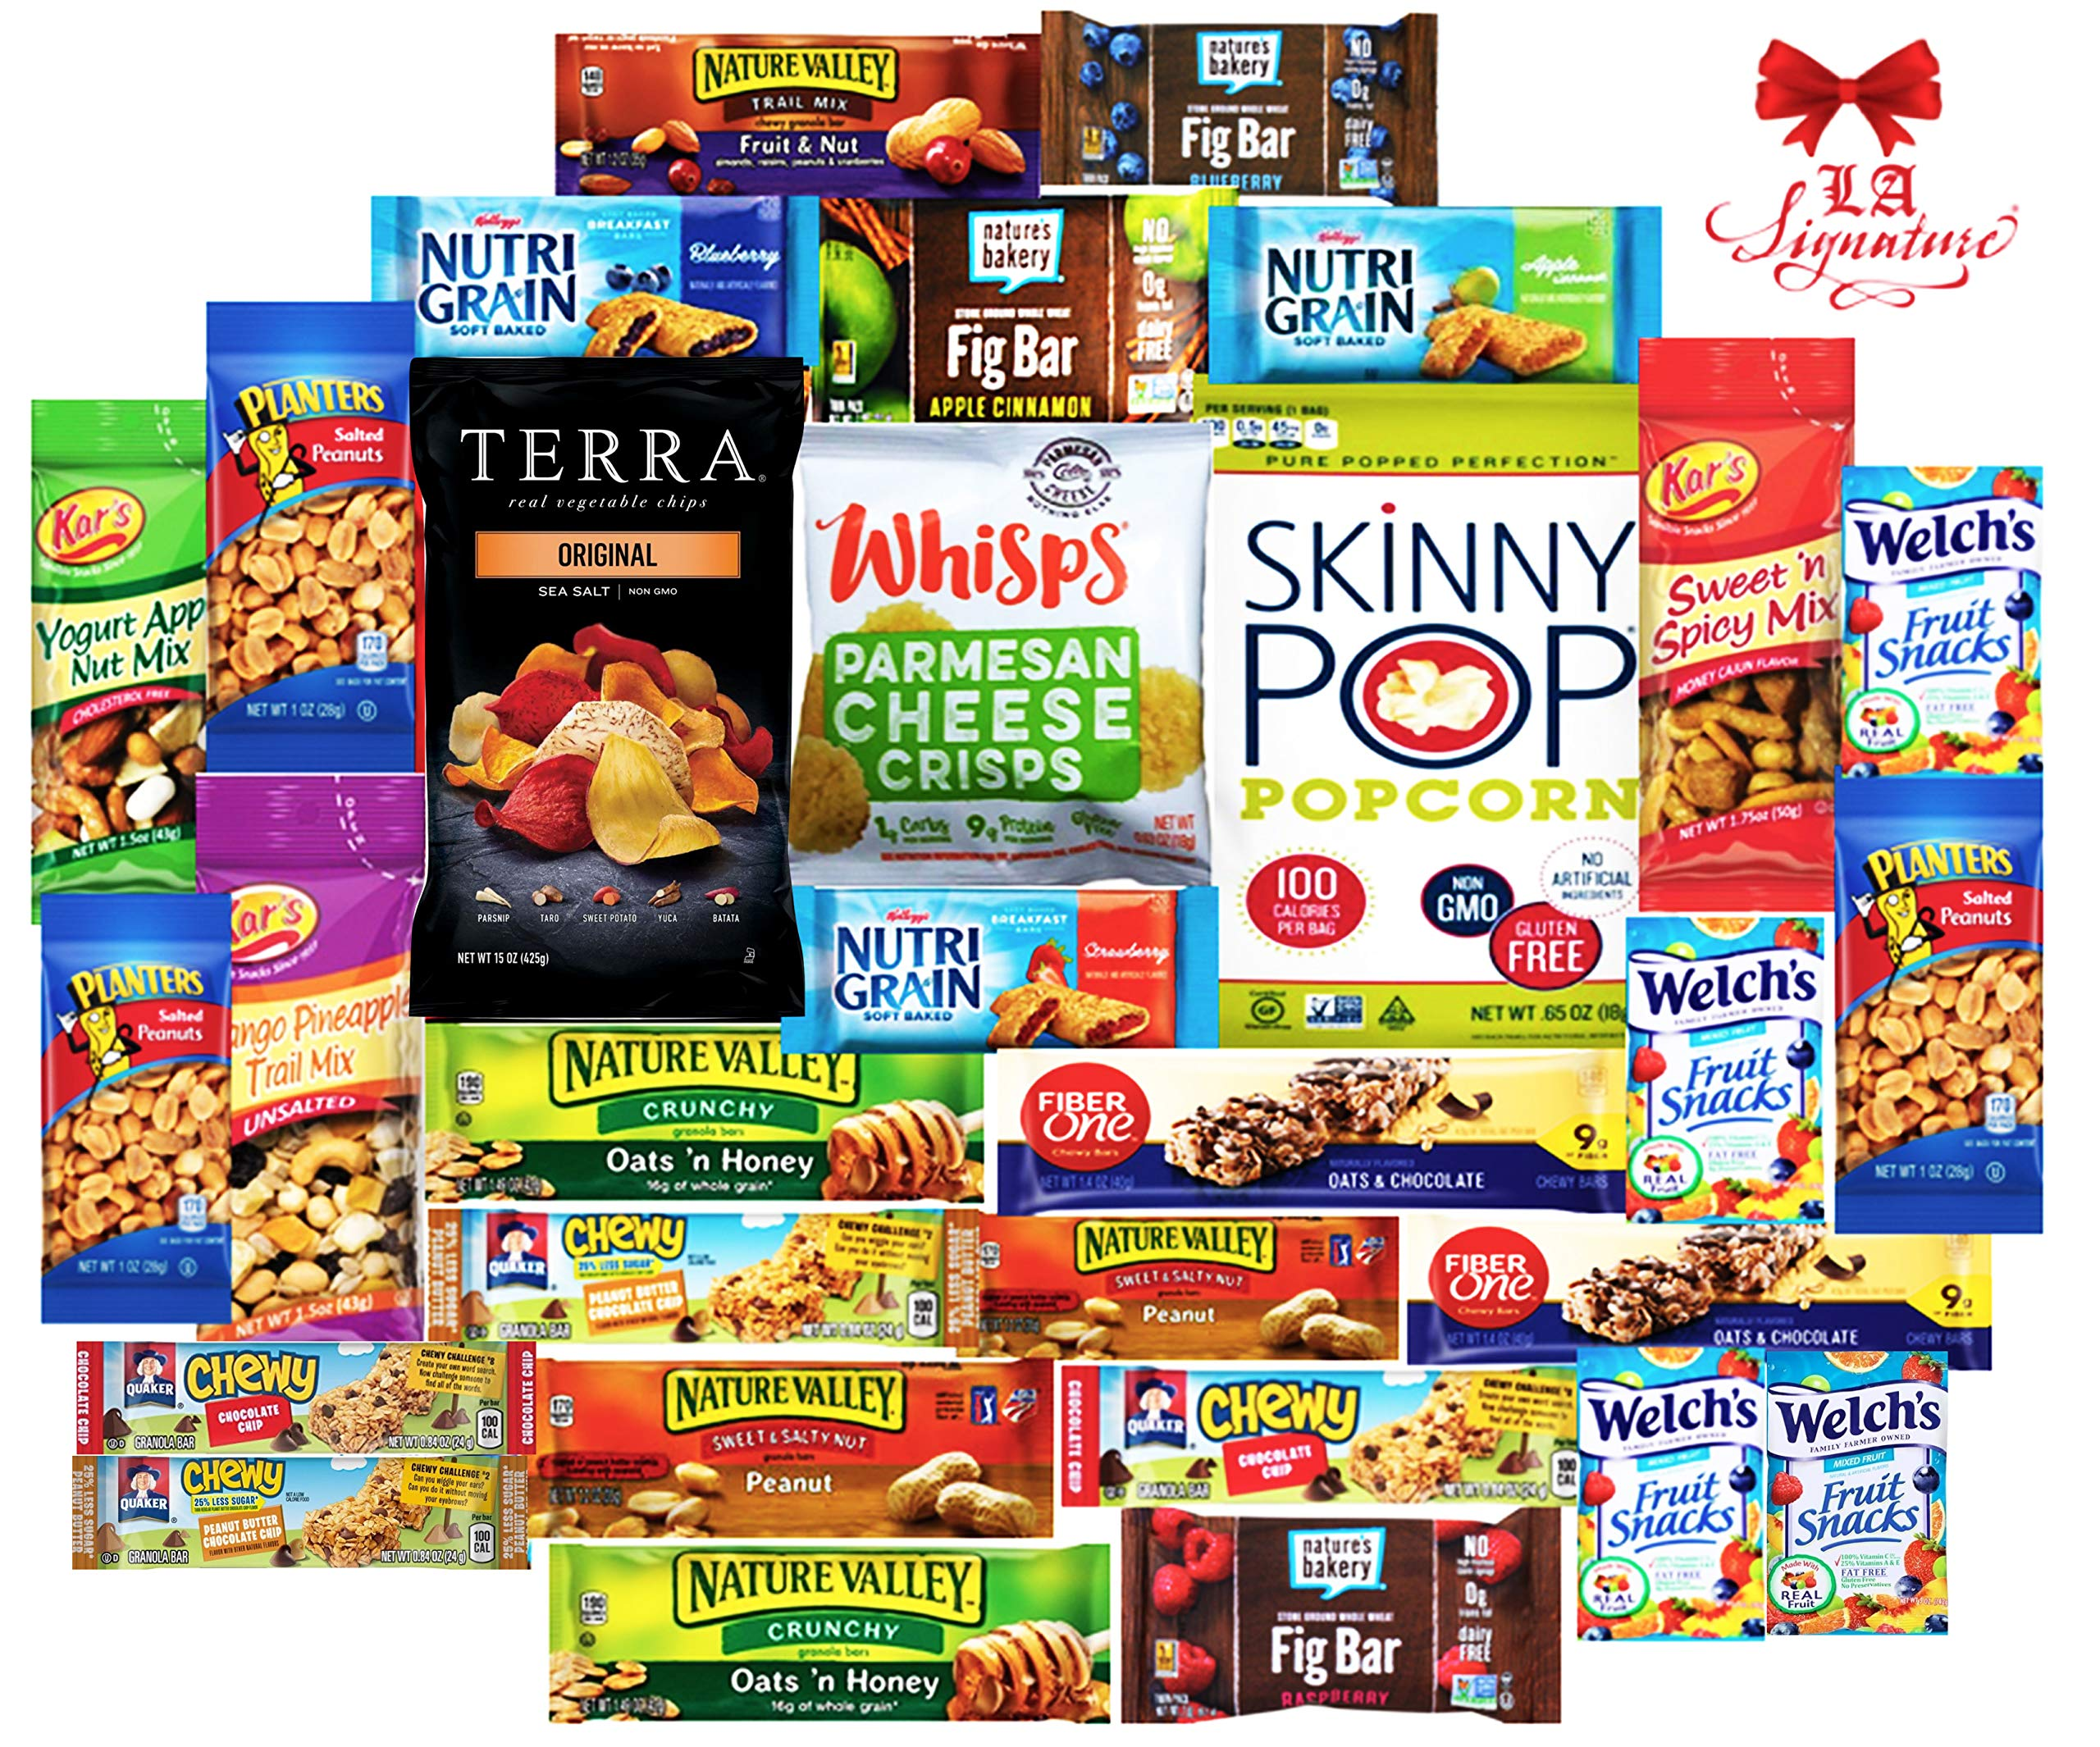 Ultimate Healthy Care Package (30 Count) - Assortments of Terra Chips, Whisps, Skinny Pop, Fig Bars, Great Easter Care Package for Family and Friends -Huevos de Pascua